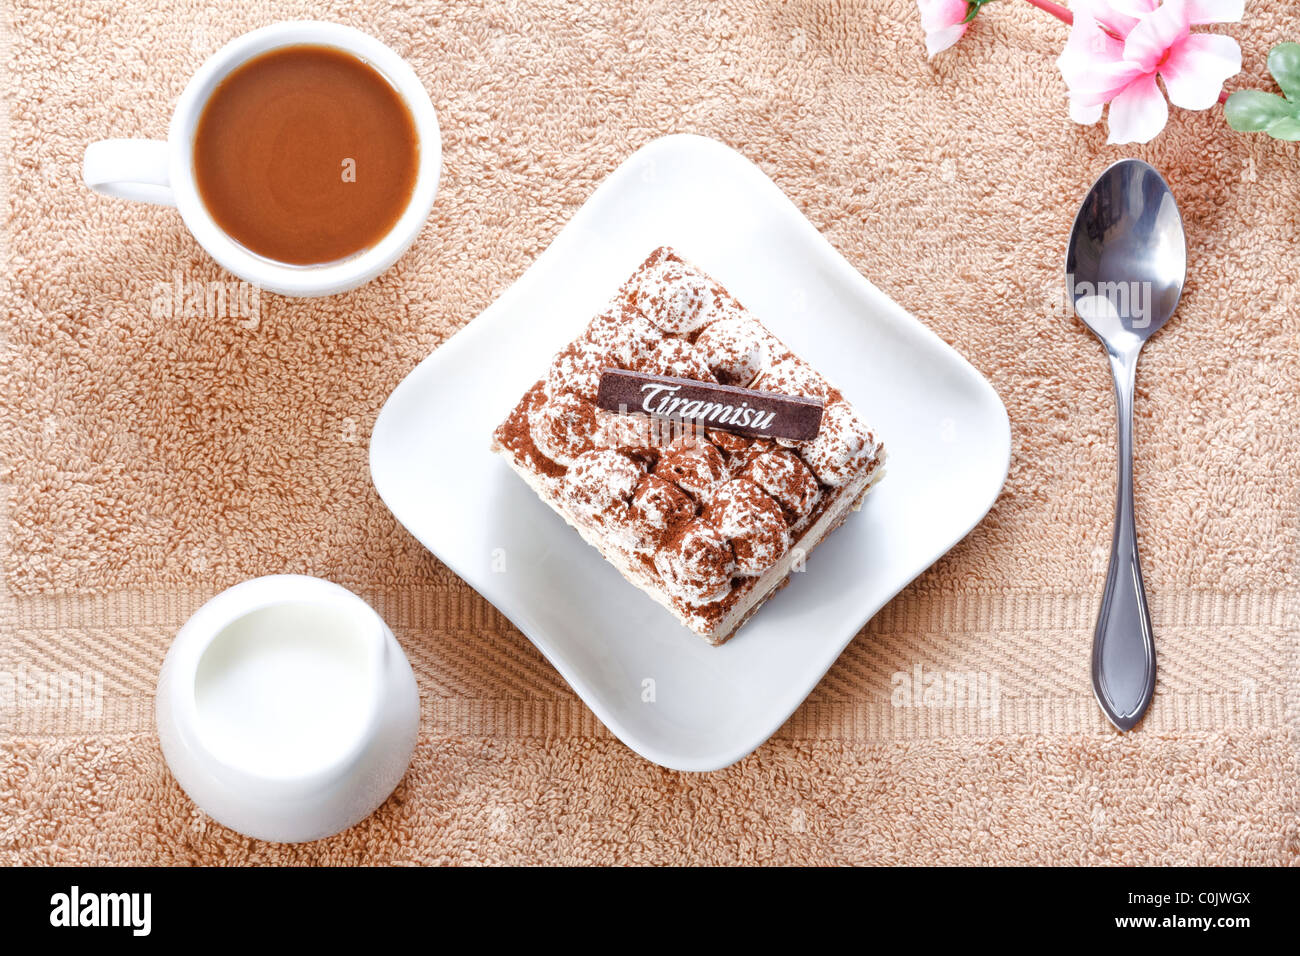 Portion of tiramisu dessert served on a white shaped plate and a cup of coffee with cream - Stock Image